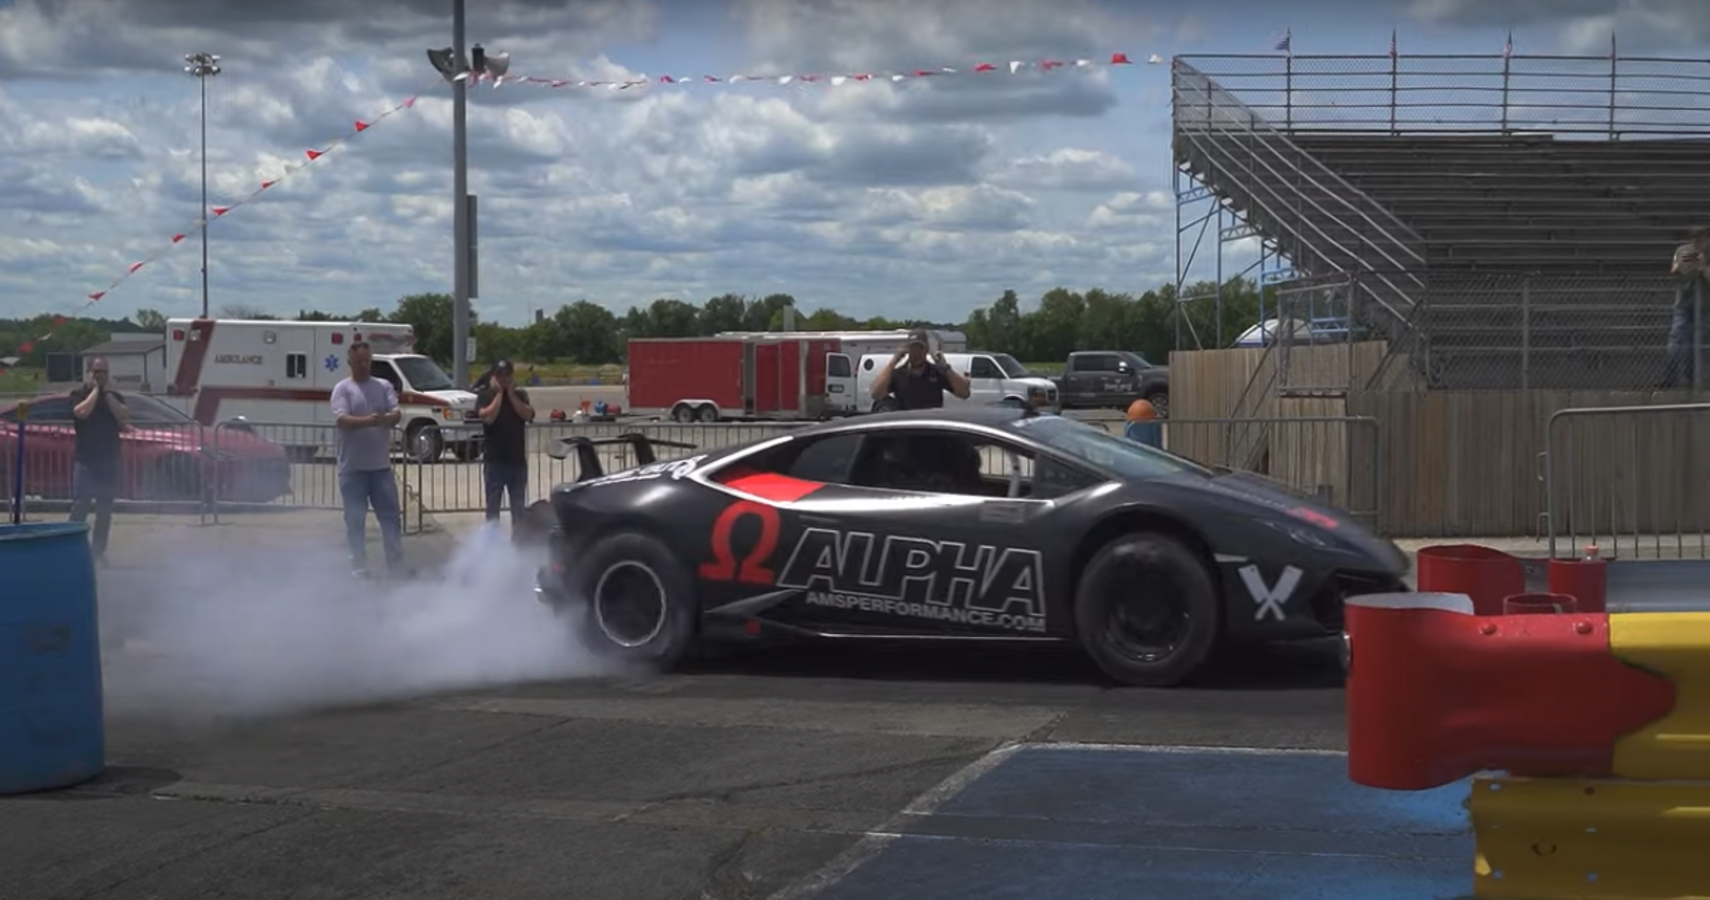 Watch This 1400-HP Lamborghini Huracan Pop Wheelies At The Track